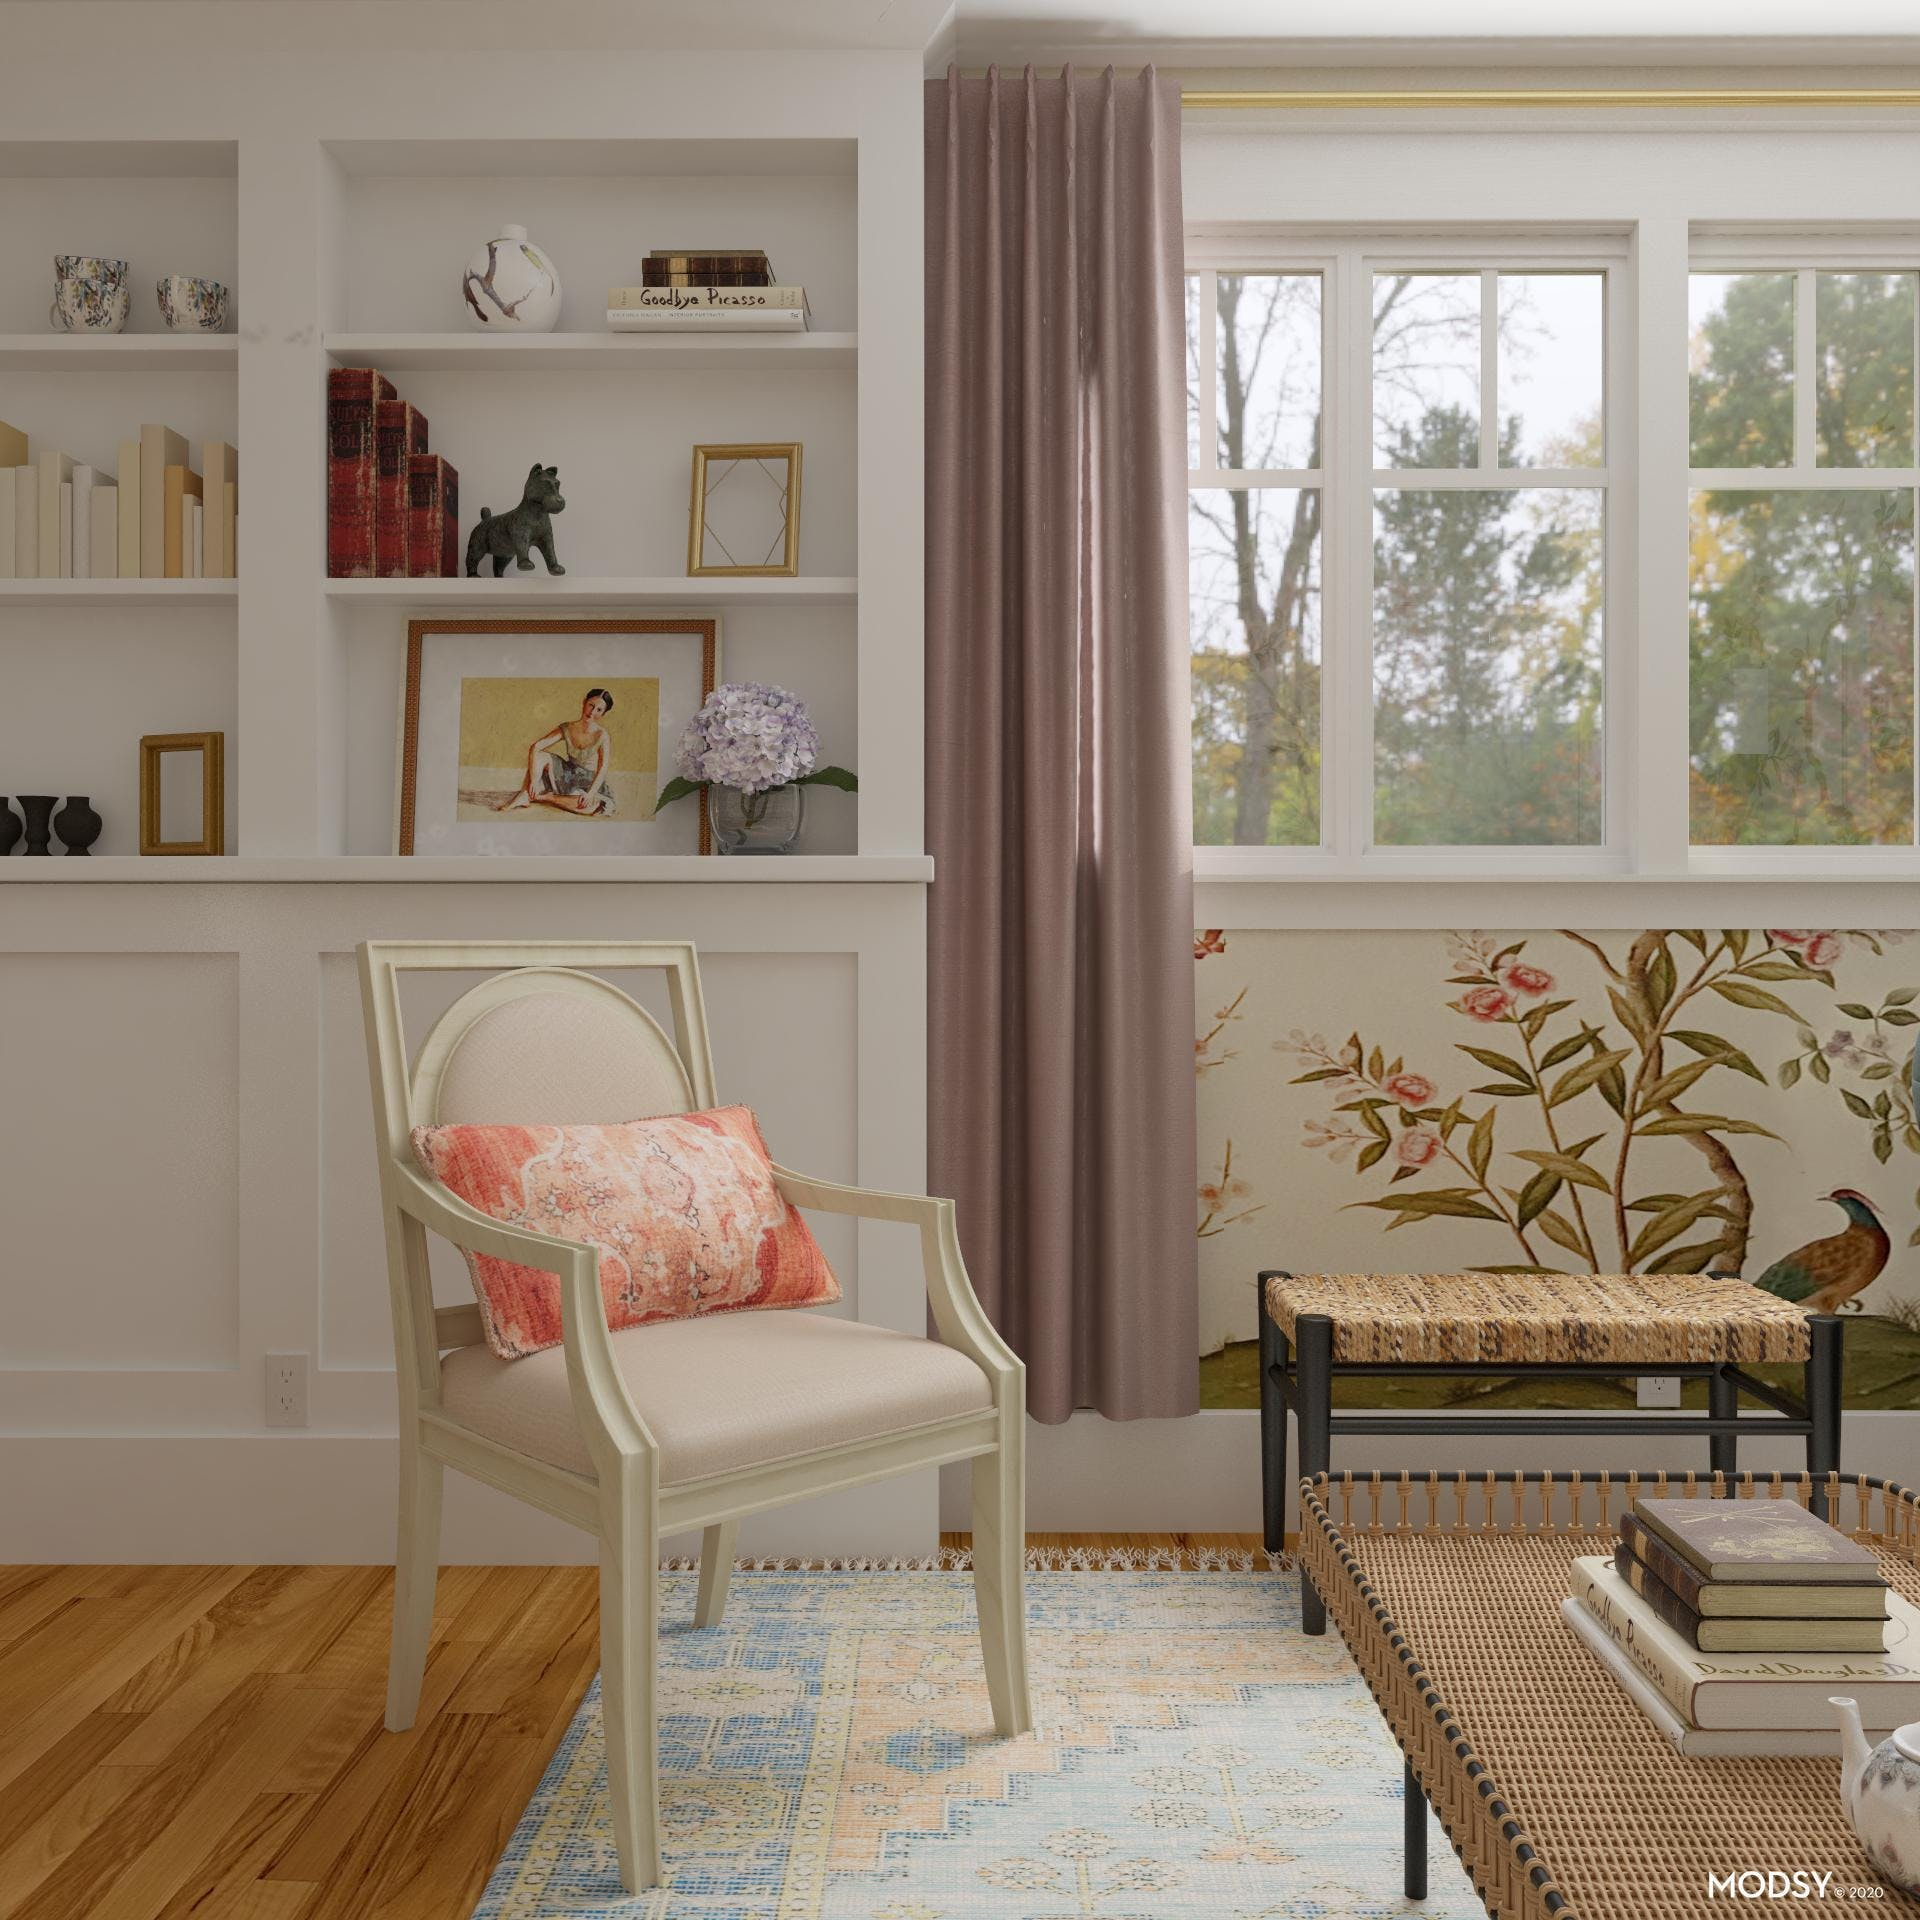 Grand Millennial Inspired Built-in with Americana Flare